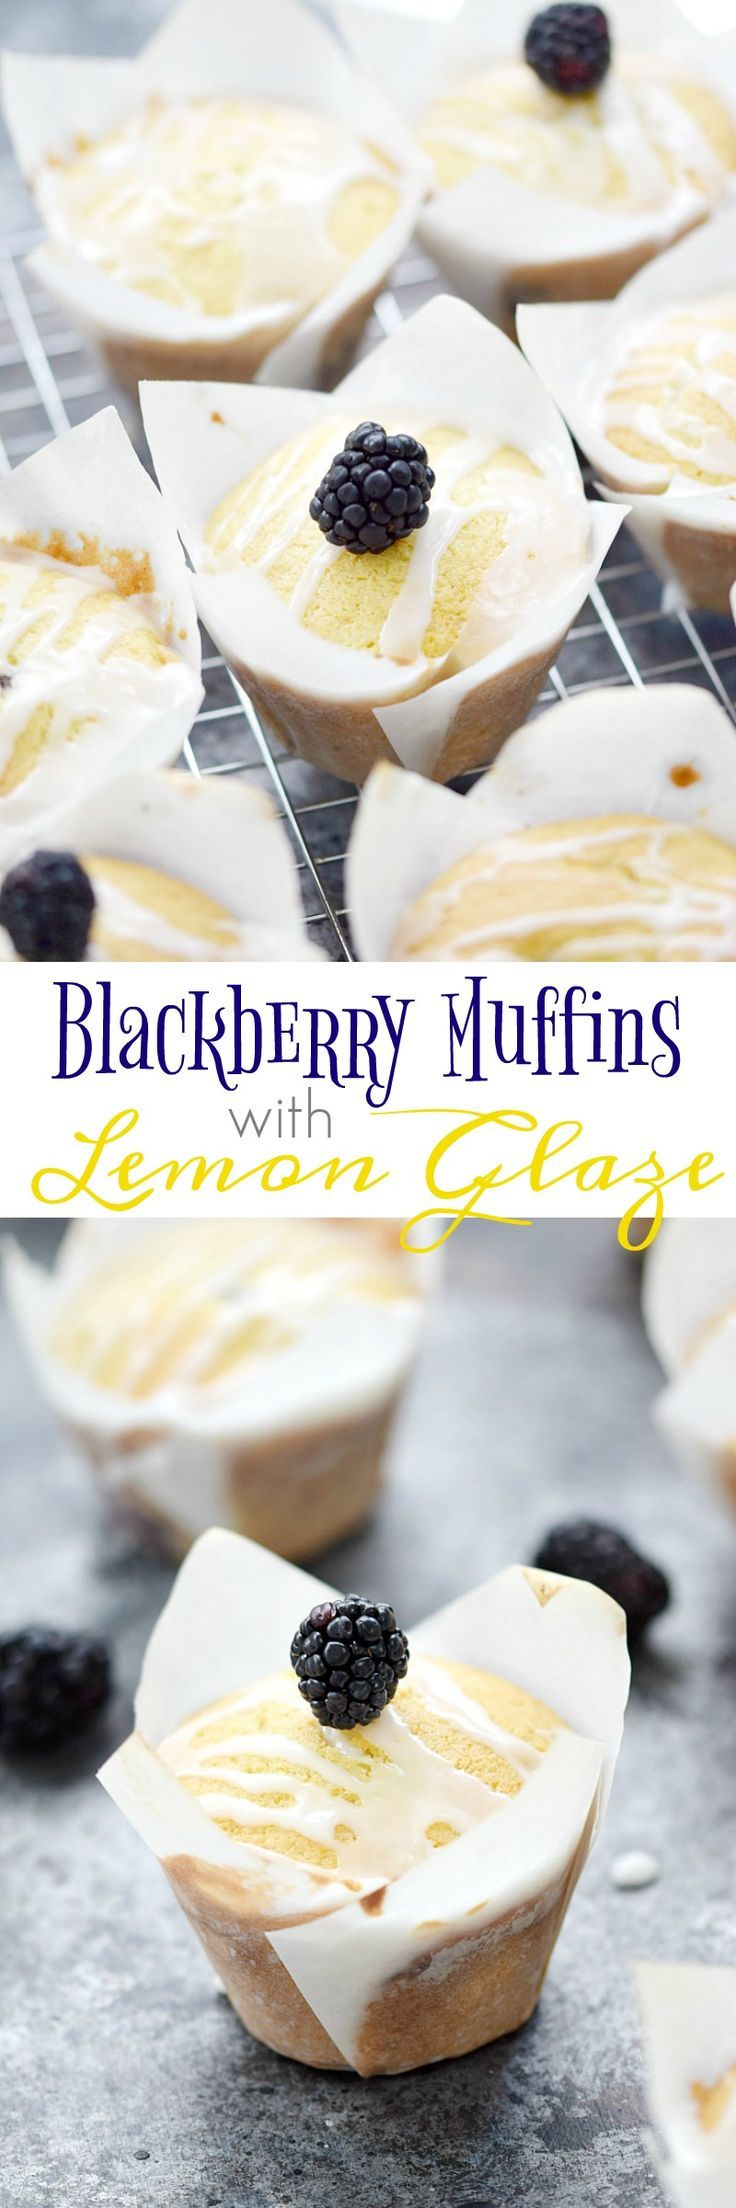 Bakery style muffins studded with blackberries and topped with a lemon glaze, make these Blackberry Muffins with Lemon Glaze a perfect breakfast treat